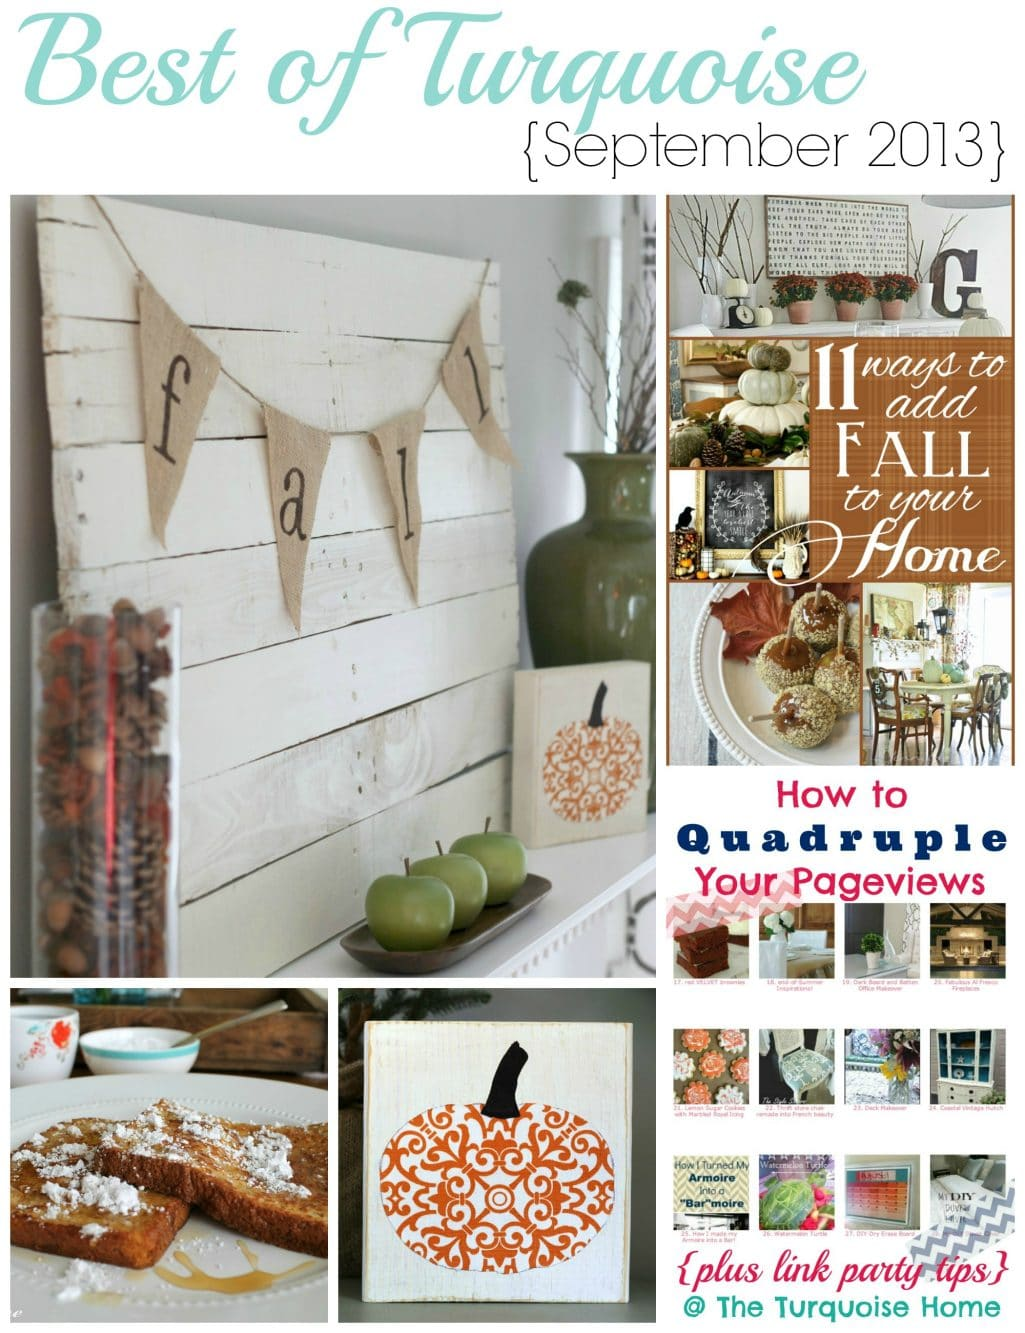 Best of Turquoise {September 2013} & More!